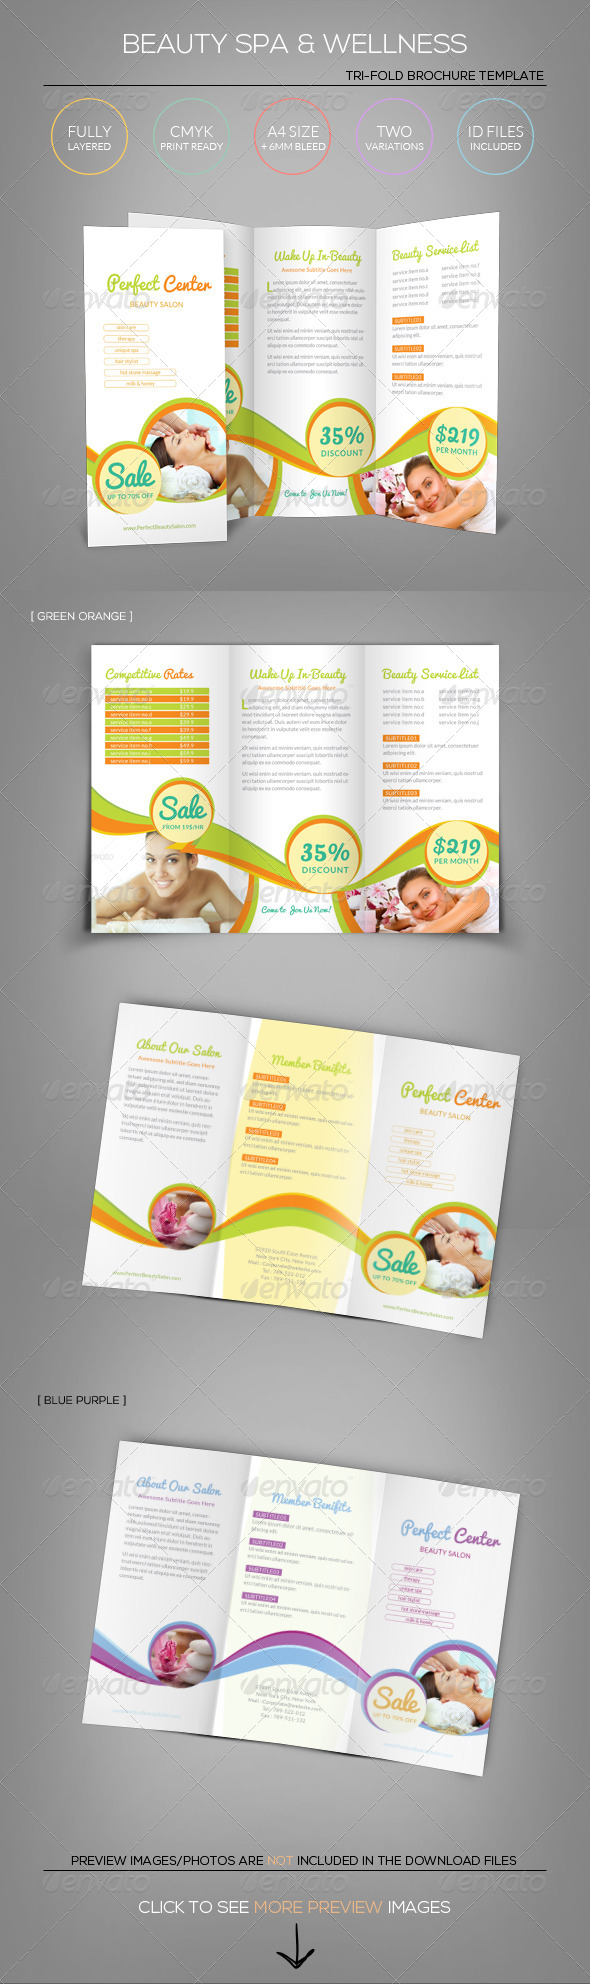 Beauty Spa  Wellness  TriFold Brochure Template  Tri Fold